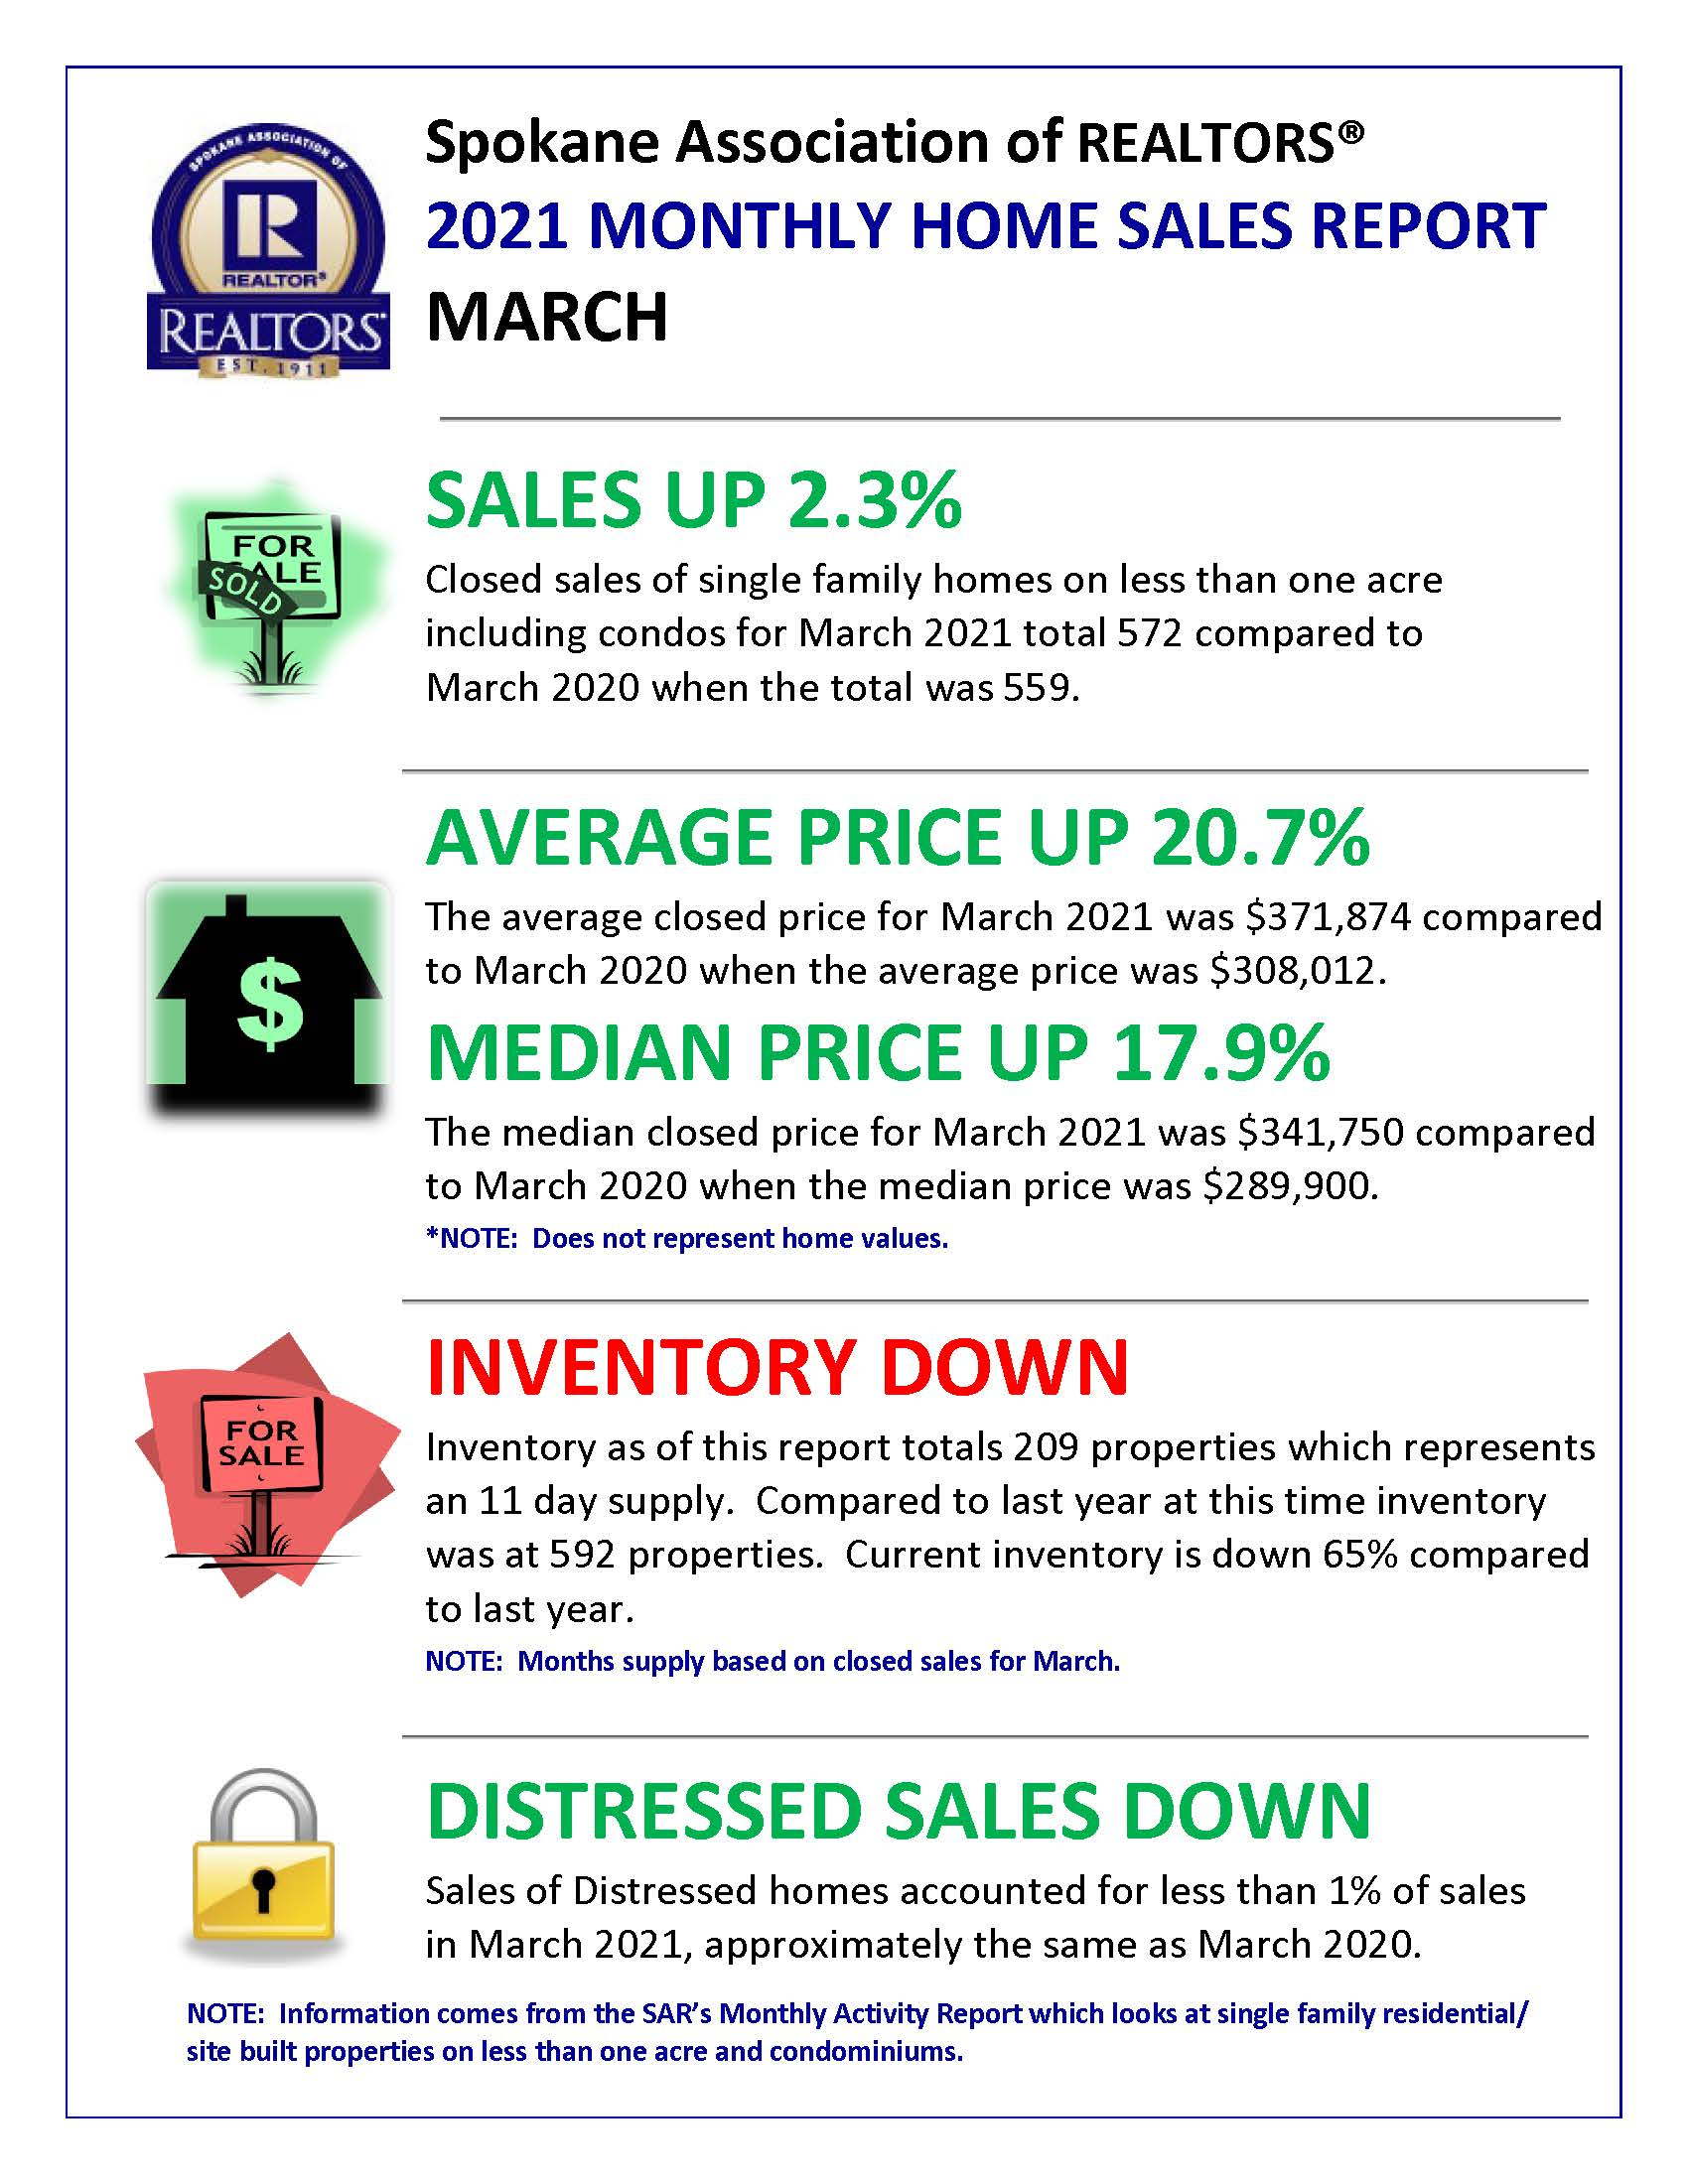 March Real Estate Market Conditions